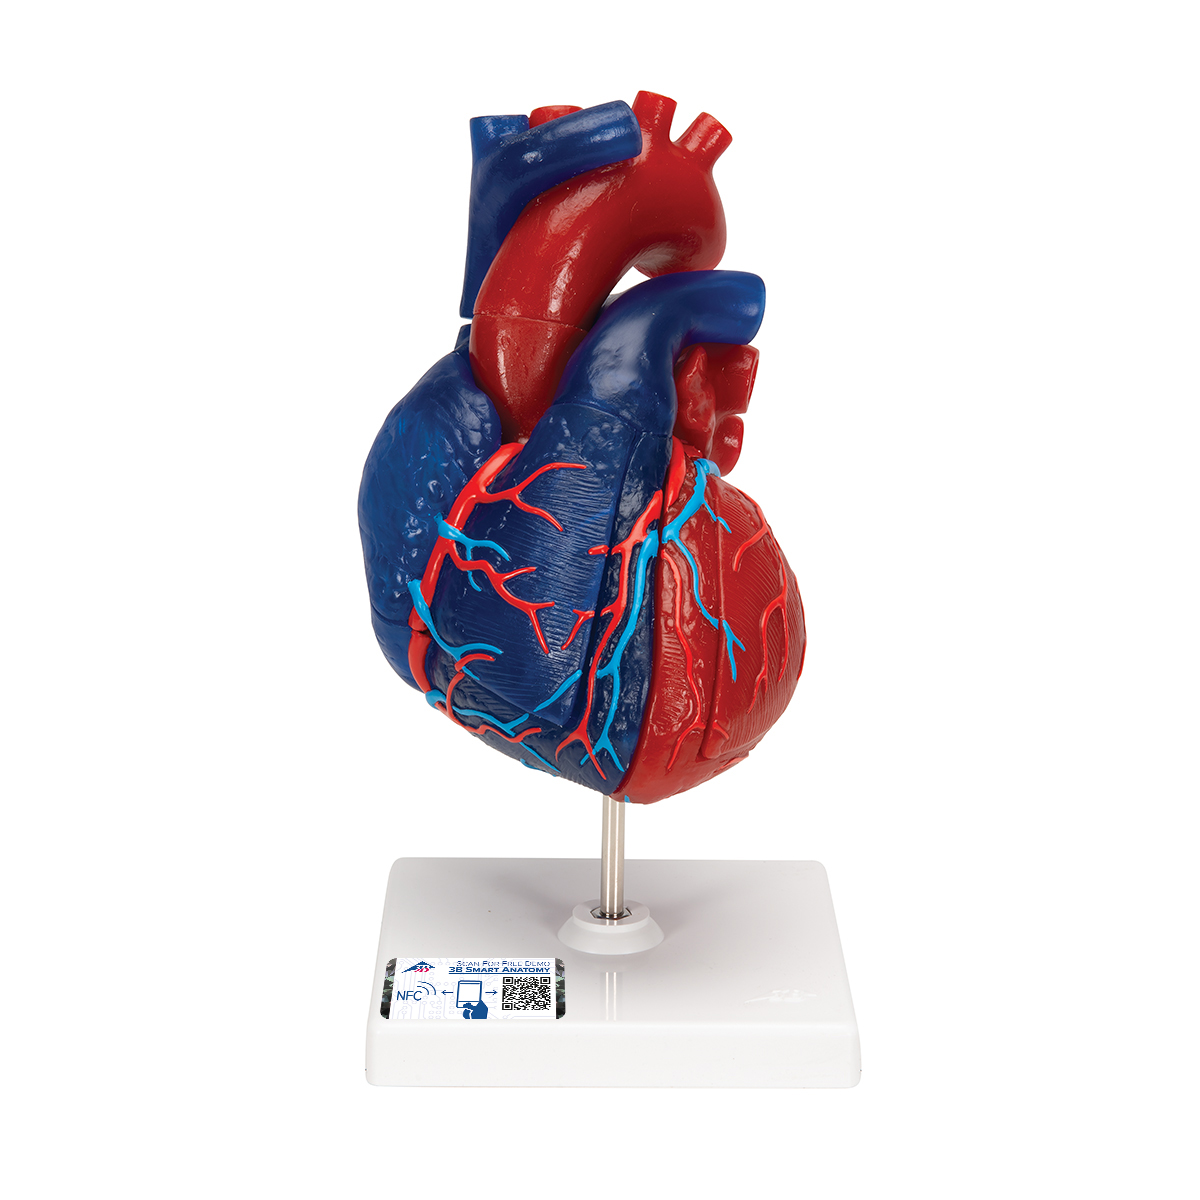 Magnetic Heart model, life-size, 5 parts - 1010007 - 3B Scientific ...